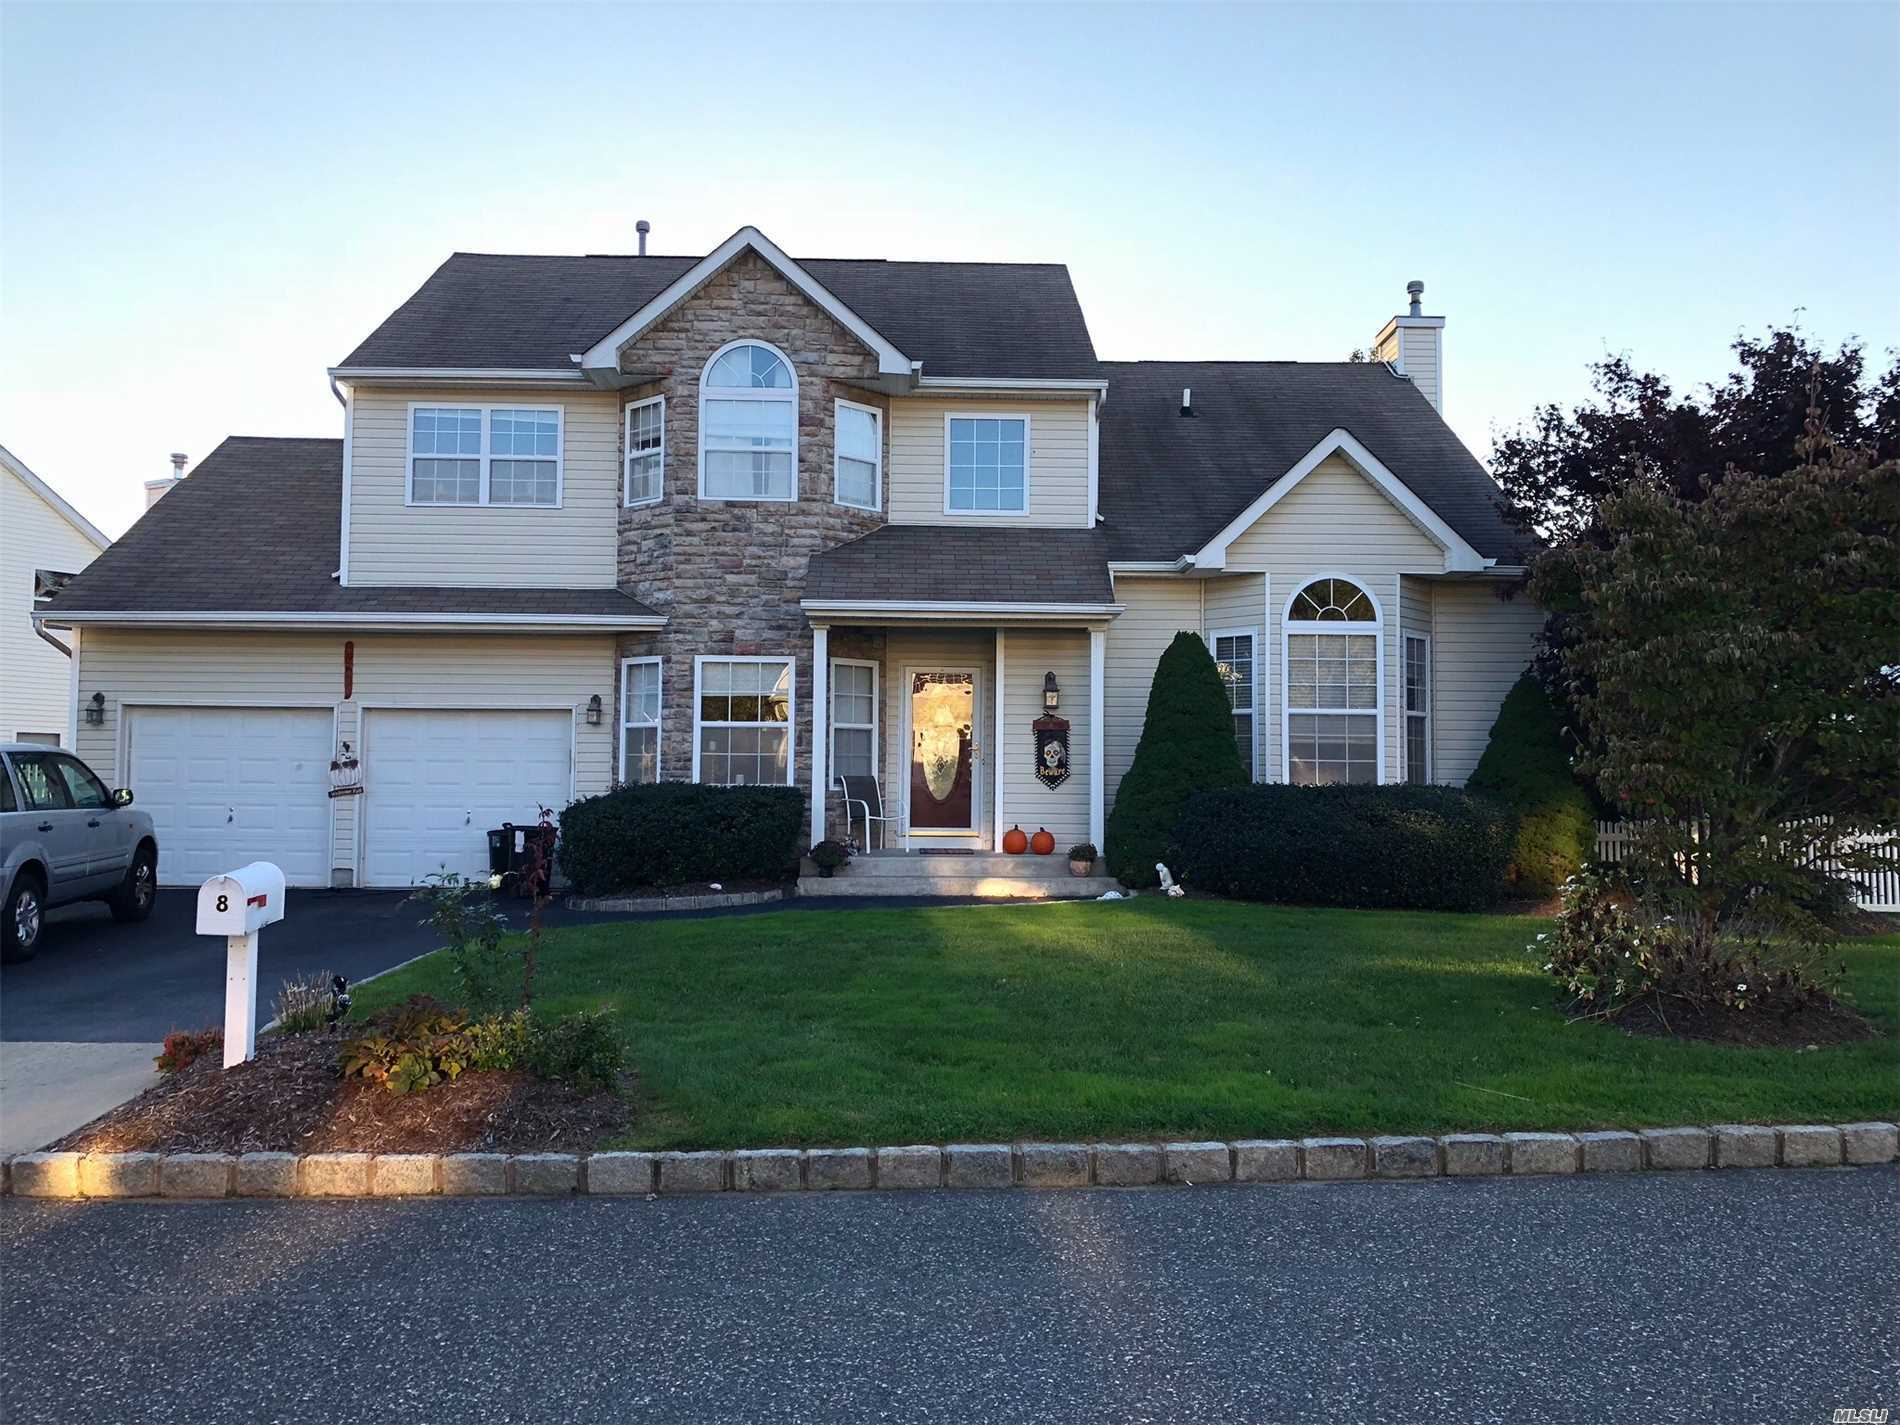 Lovely 2350 Sq 4 Bedroom Colonial Located In Summerfields Gated Community.  Mstr Suite W/ Mstr Bth(Tub & Shower), 2 Master Size Br's With Walk-Ins, Center Island Eik W/42' Cabs, Granite Counters, Ceramic Flr & Bcksplash, S/S Appliances, Wood Flr Thru Main, Fam Rm With Stone Wall Fpl, Beautiful Fin Bsmt, 22 Owned Solar Panels (2Yrs Old) New H.W. Heater, Cac, Patio Fenced Yrd. Hoa $222